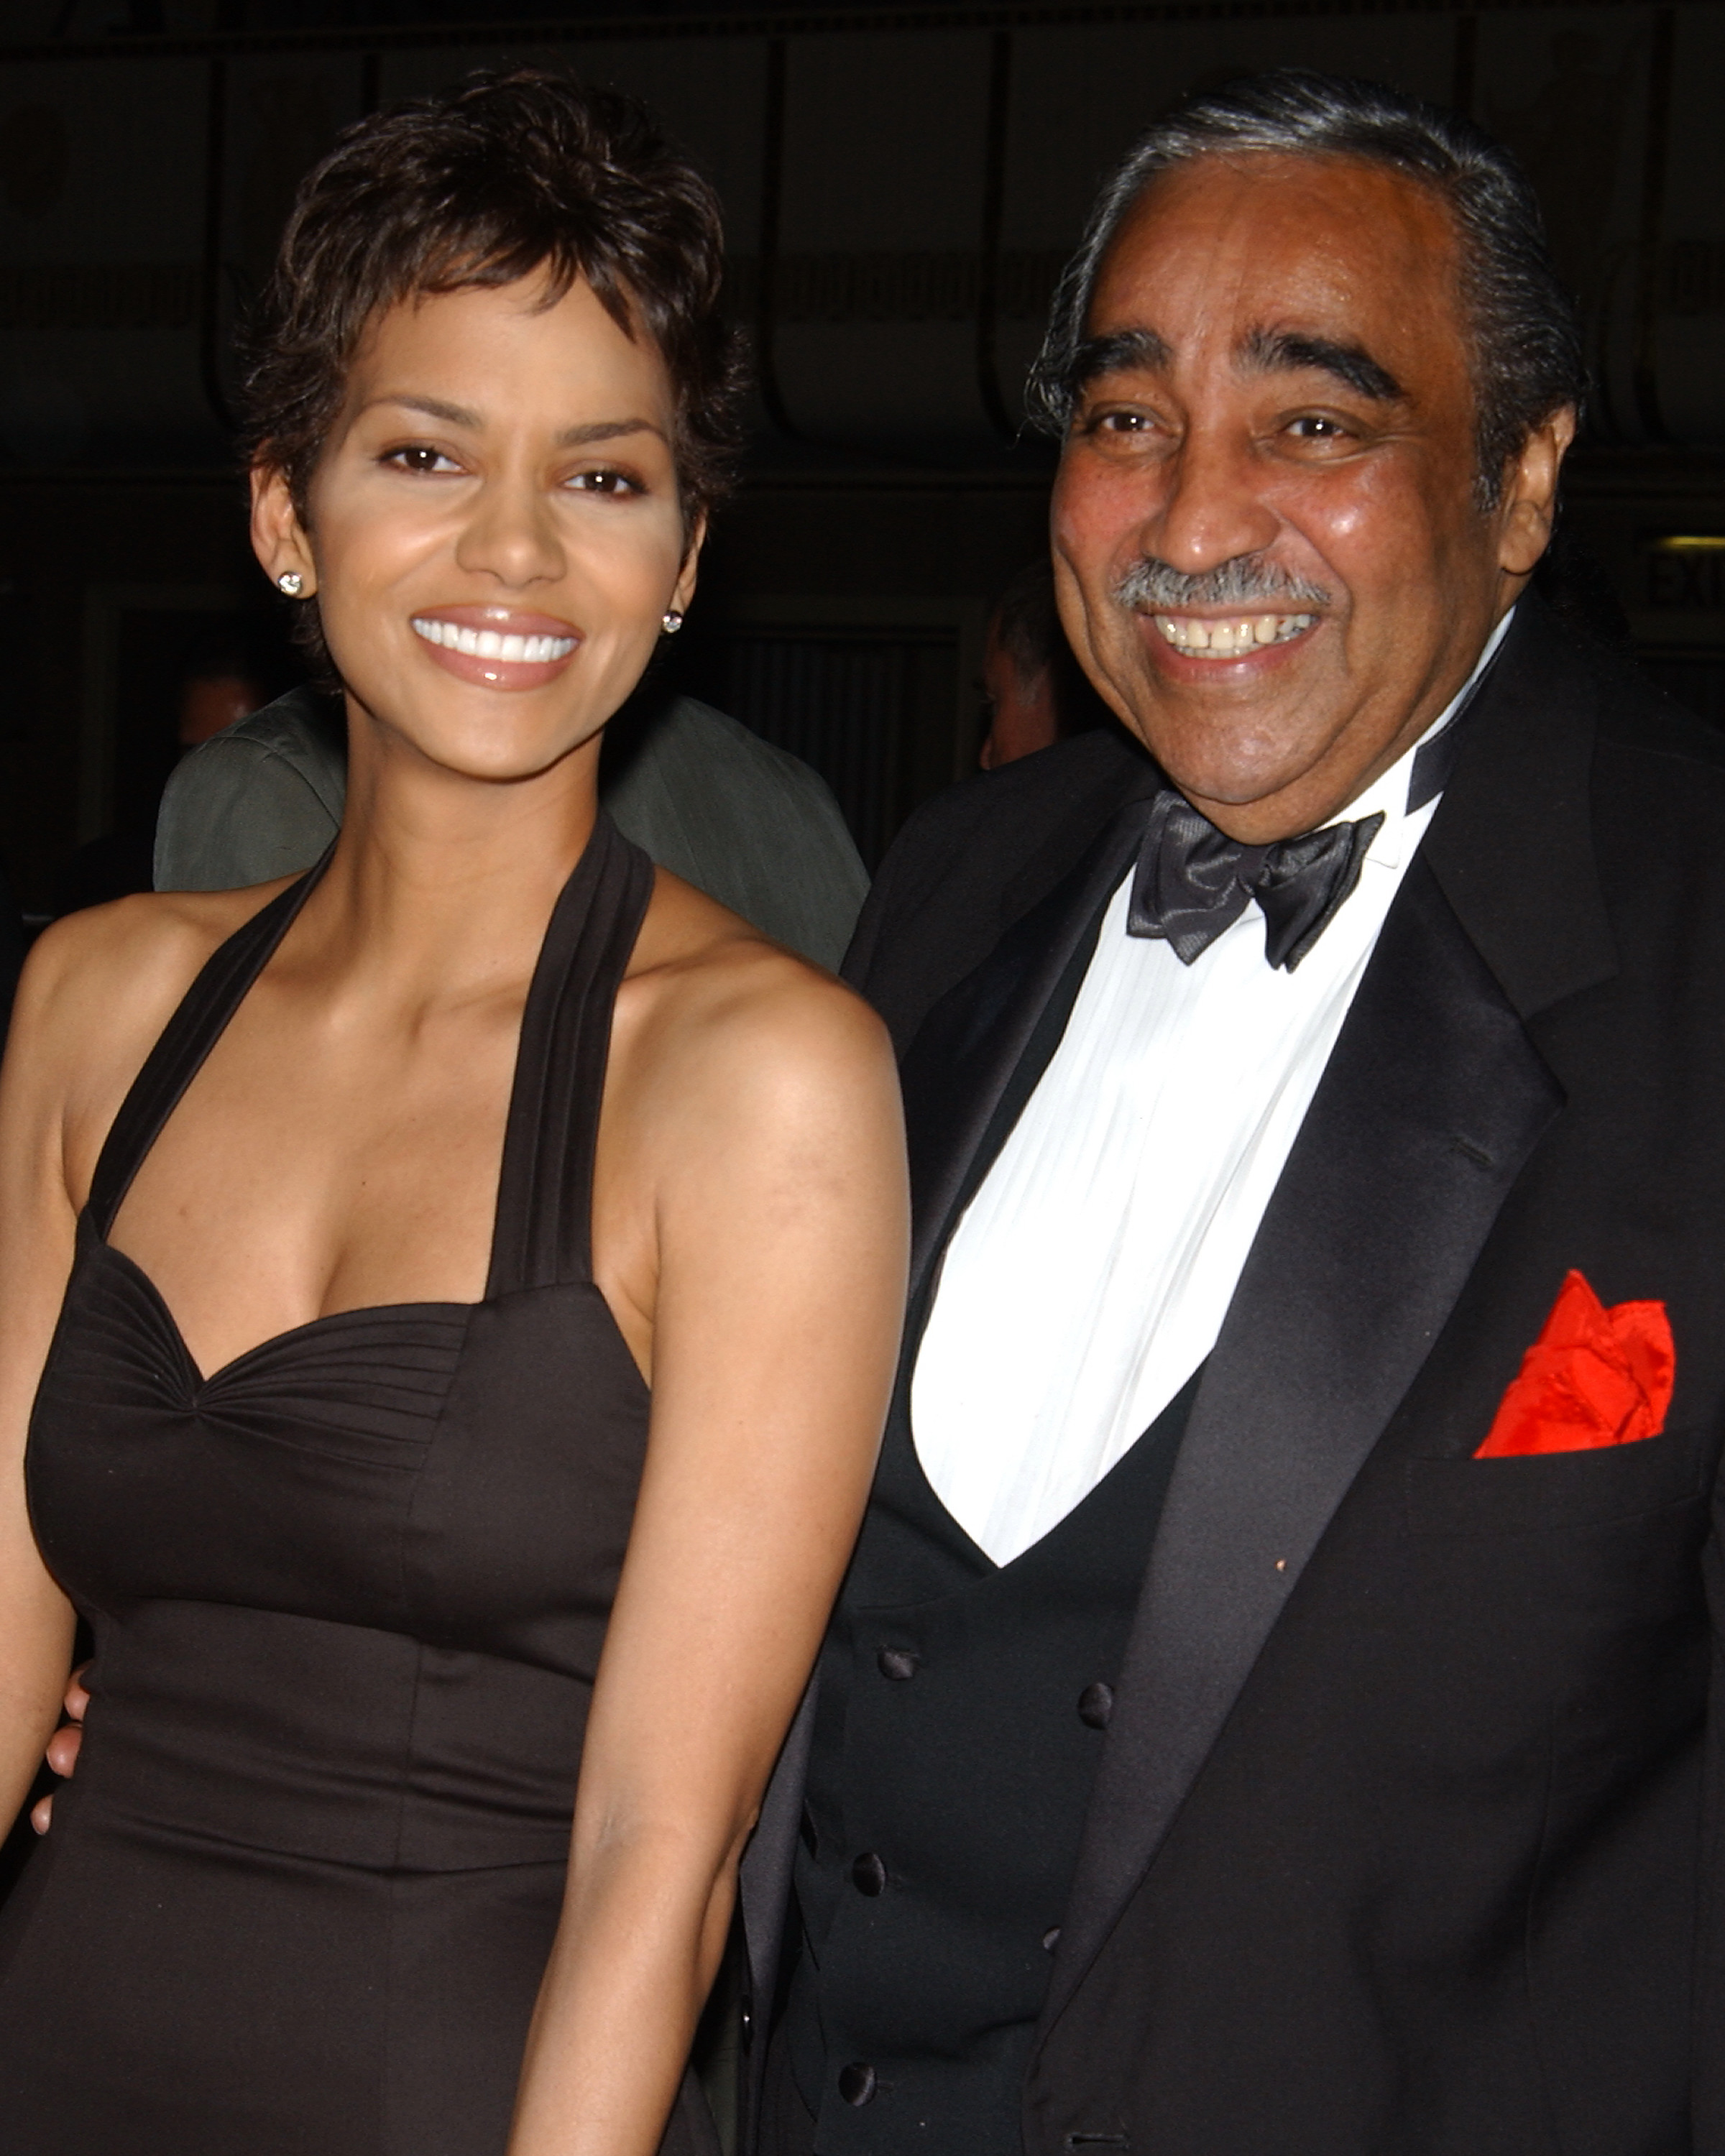 Halle Berry and Congressman Charles Rangel at the Directors Guild of America dinner at the Waldorf Astoria in New York City, June 9, 2002.